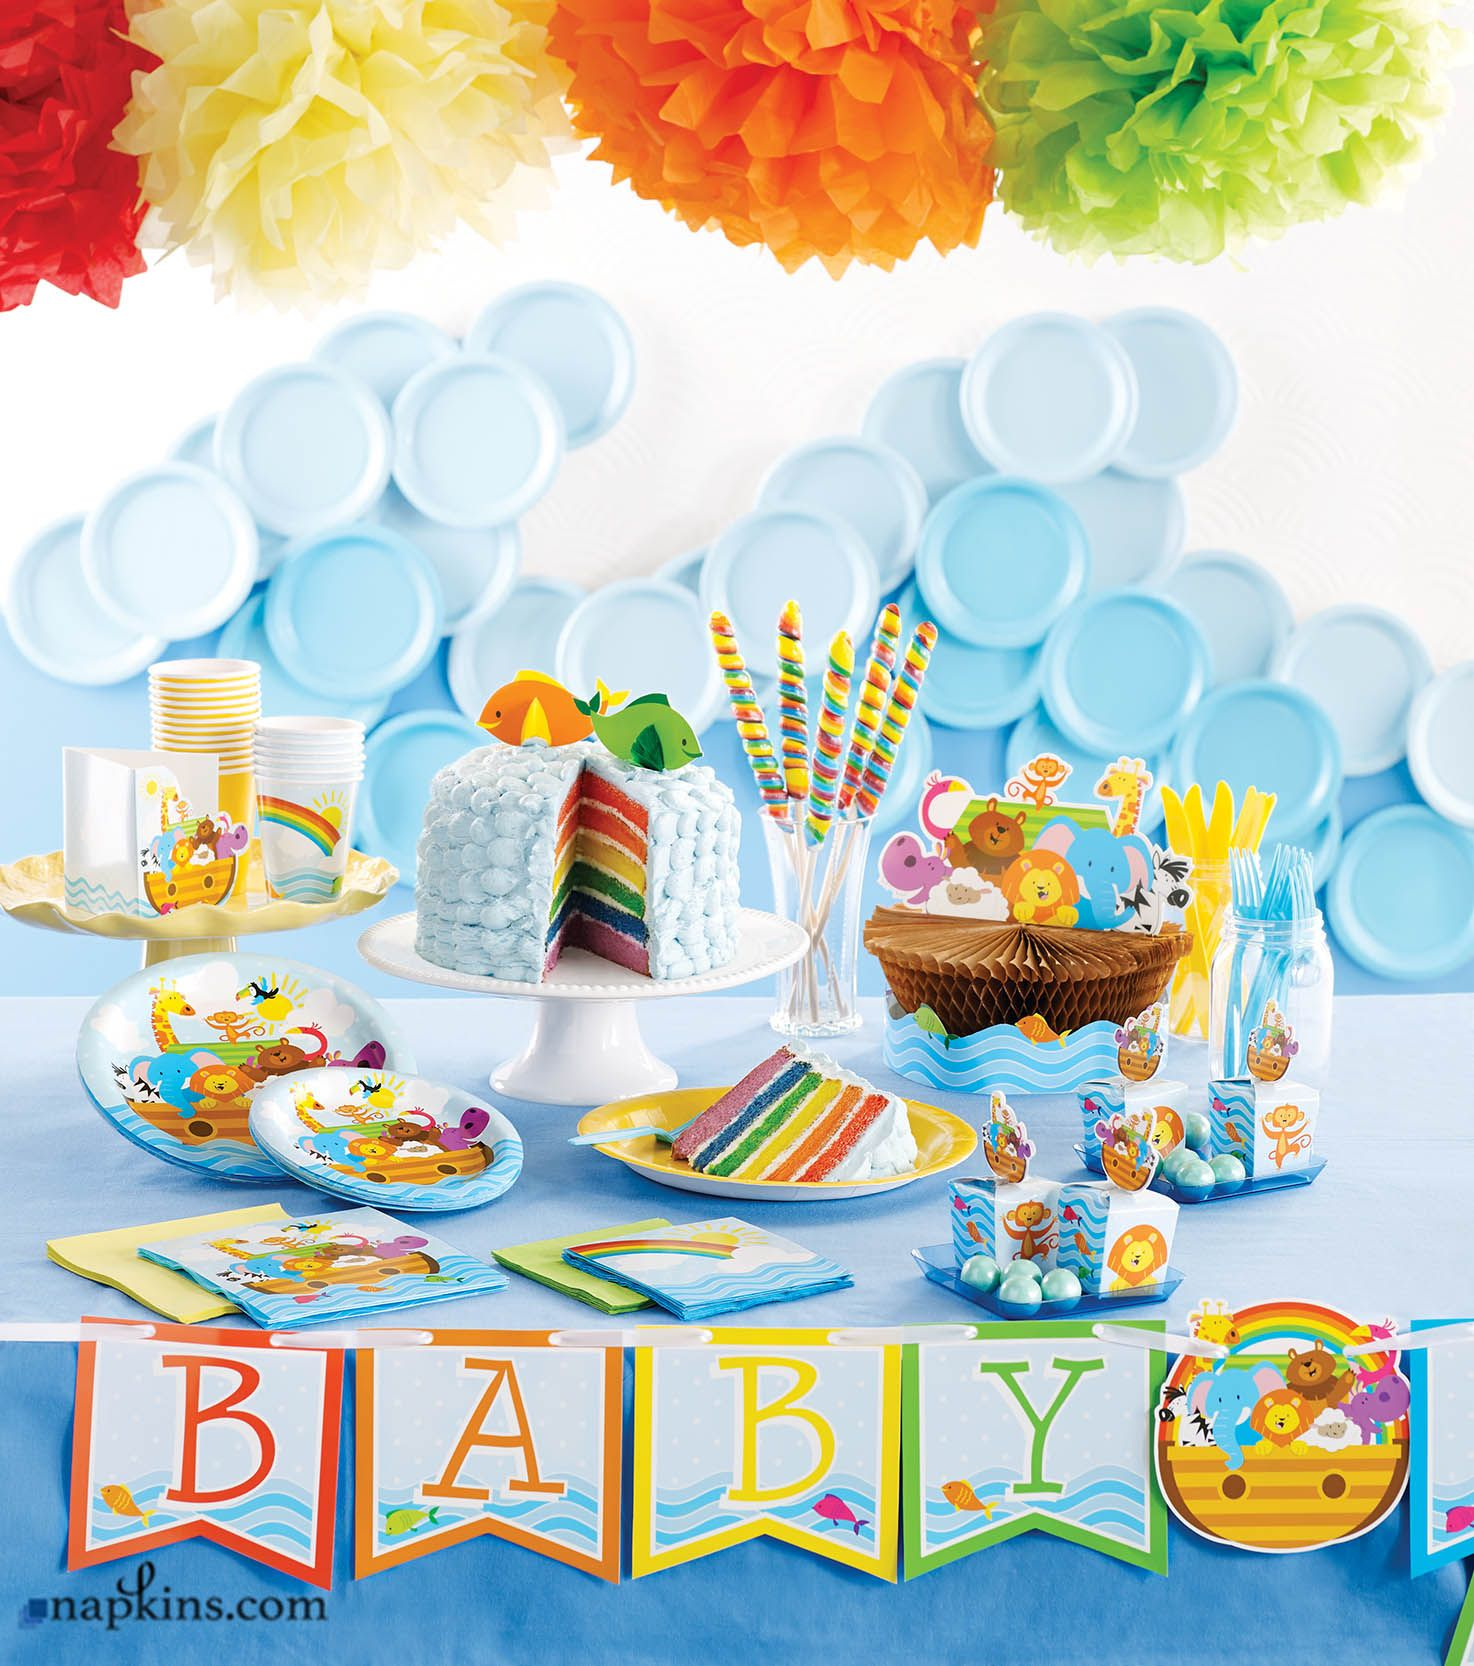 Baby Shower Party By Adding This Fun, Colorful, And High